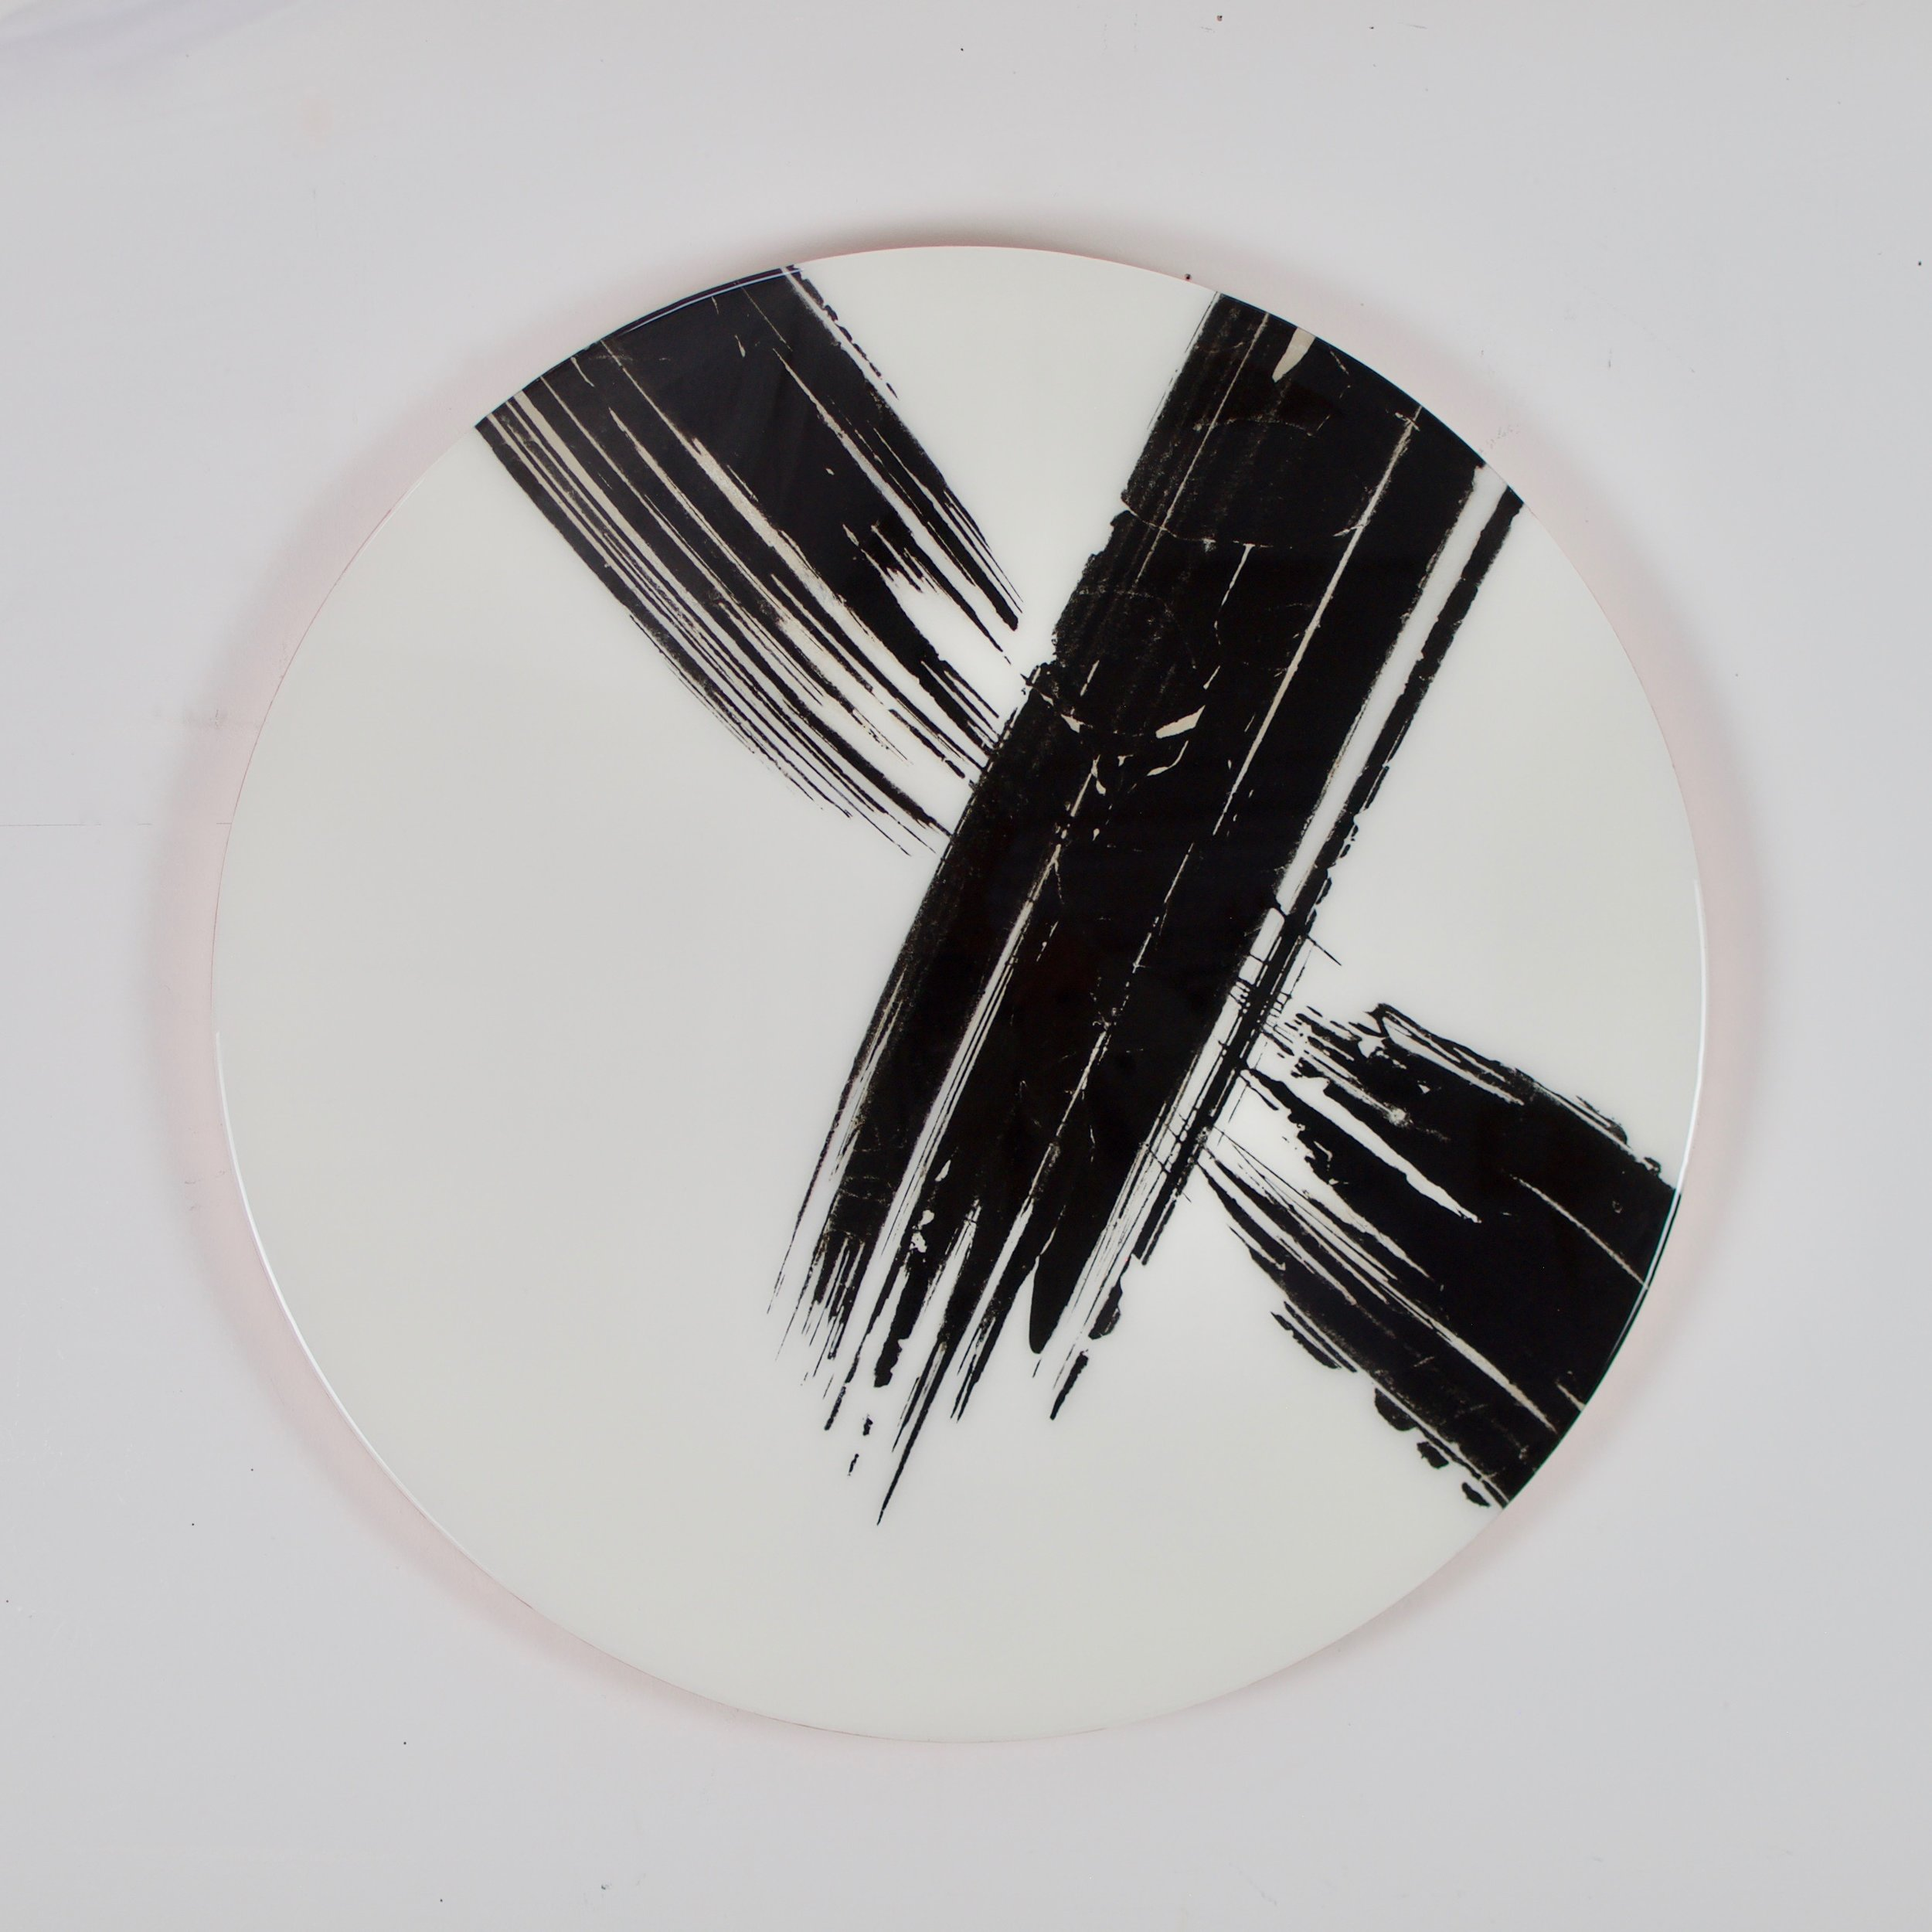 Interupted Flow, 2018_Rod McIntosh_Indian ink on Chinese mulberry paper, on Fabriano cartridge (120gsm) on Birch panel, copper leaf, resin coated_80cm diameter a 28mm.jpg